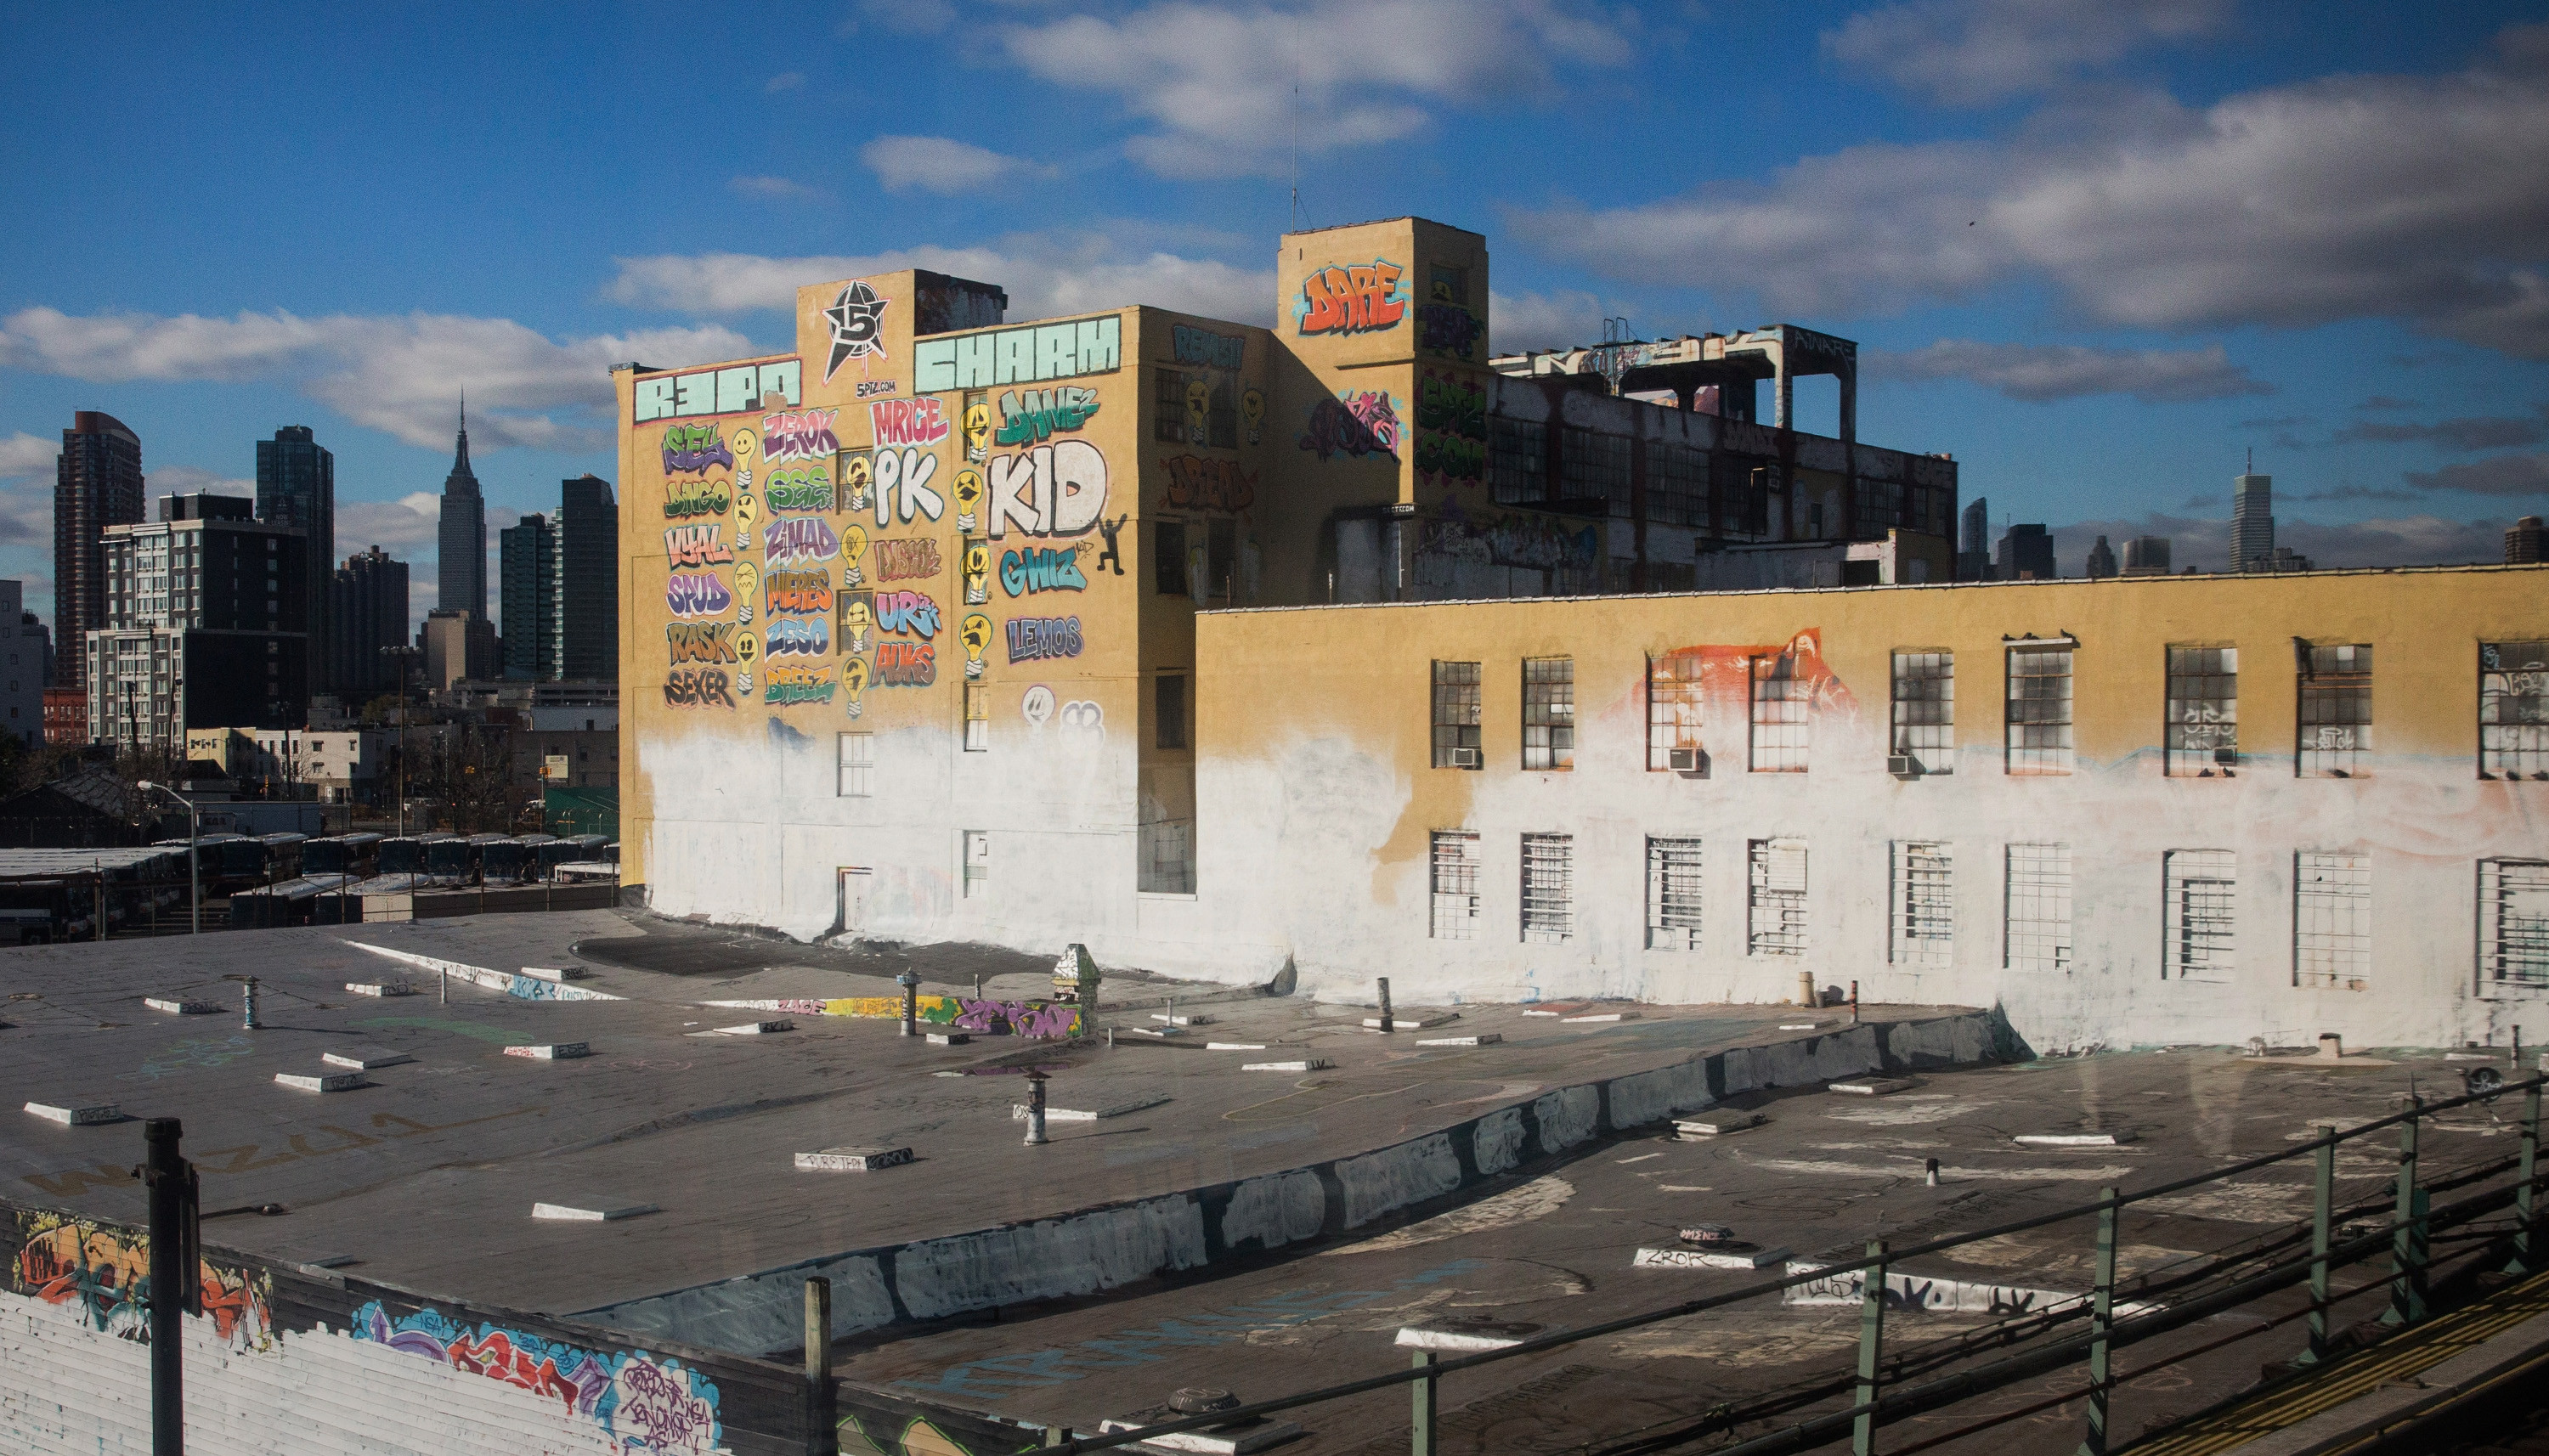 2013-11-21-5POINTZ_original4.jpg